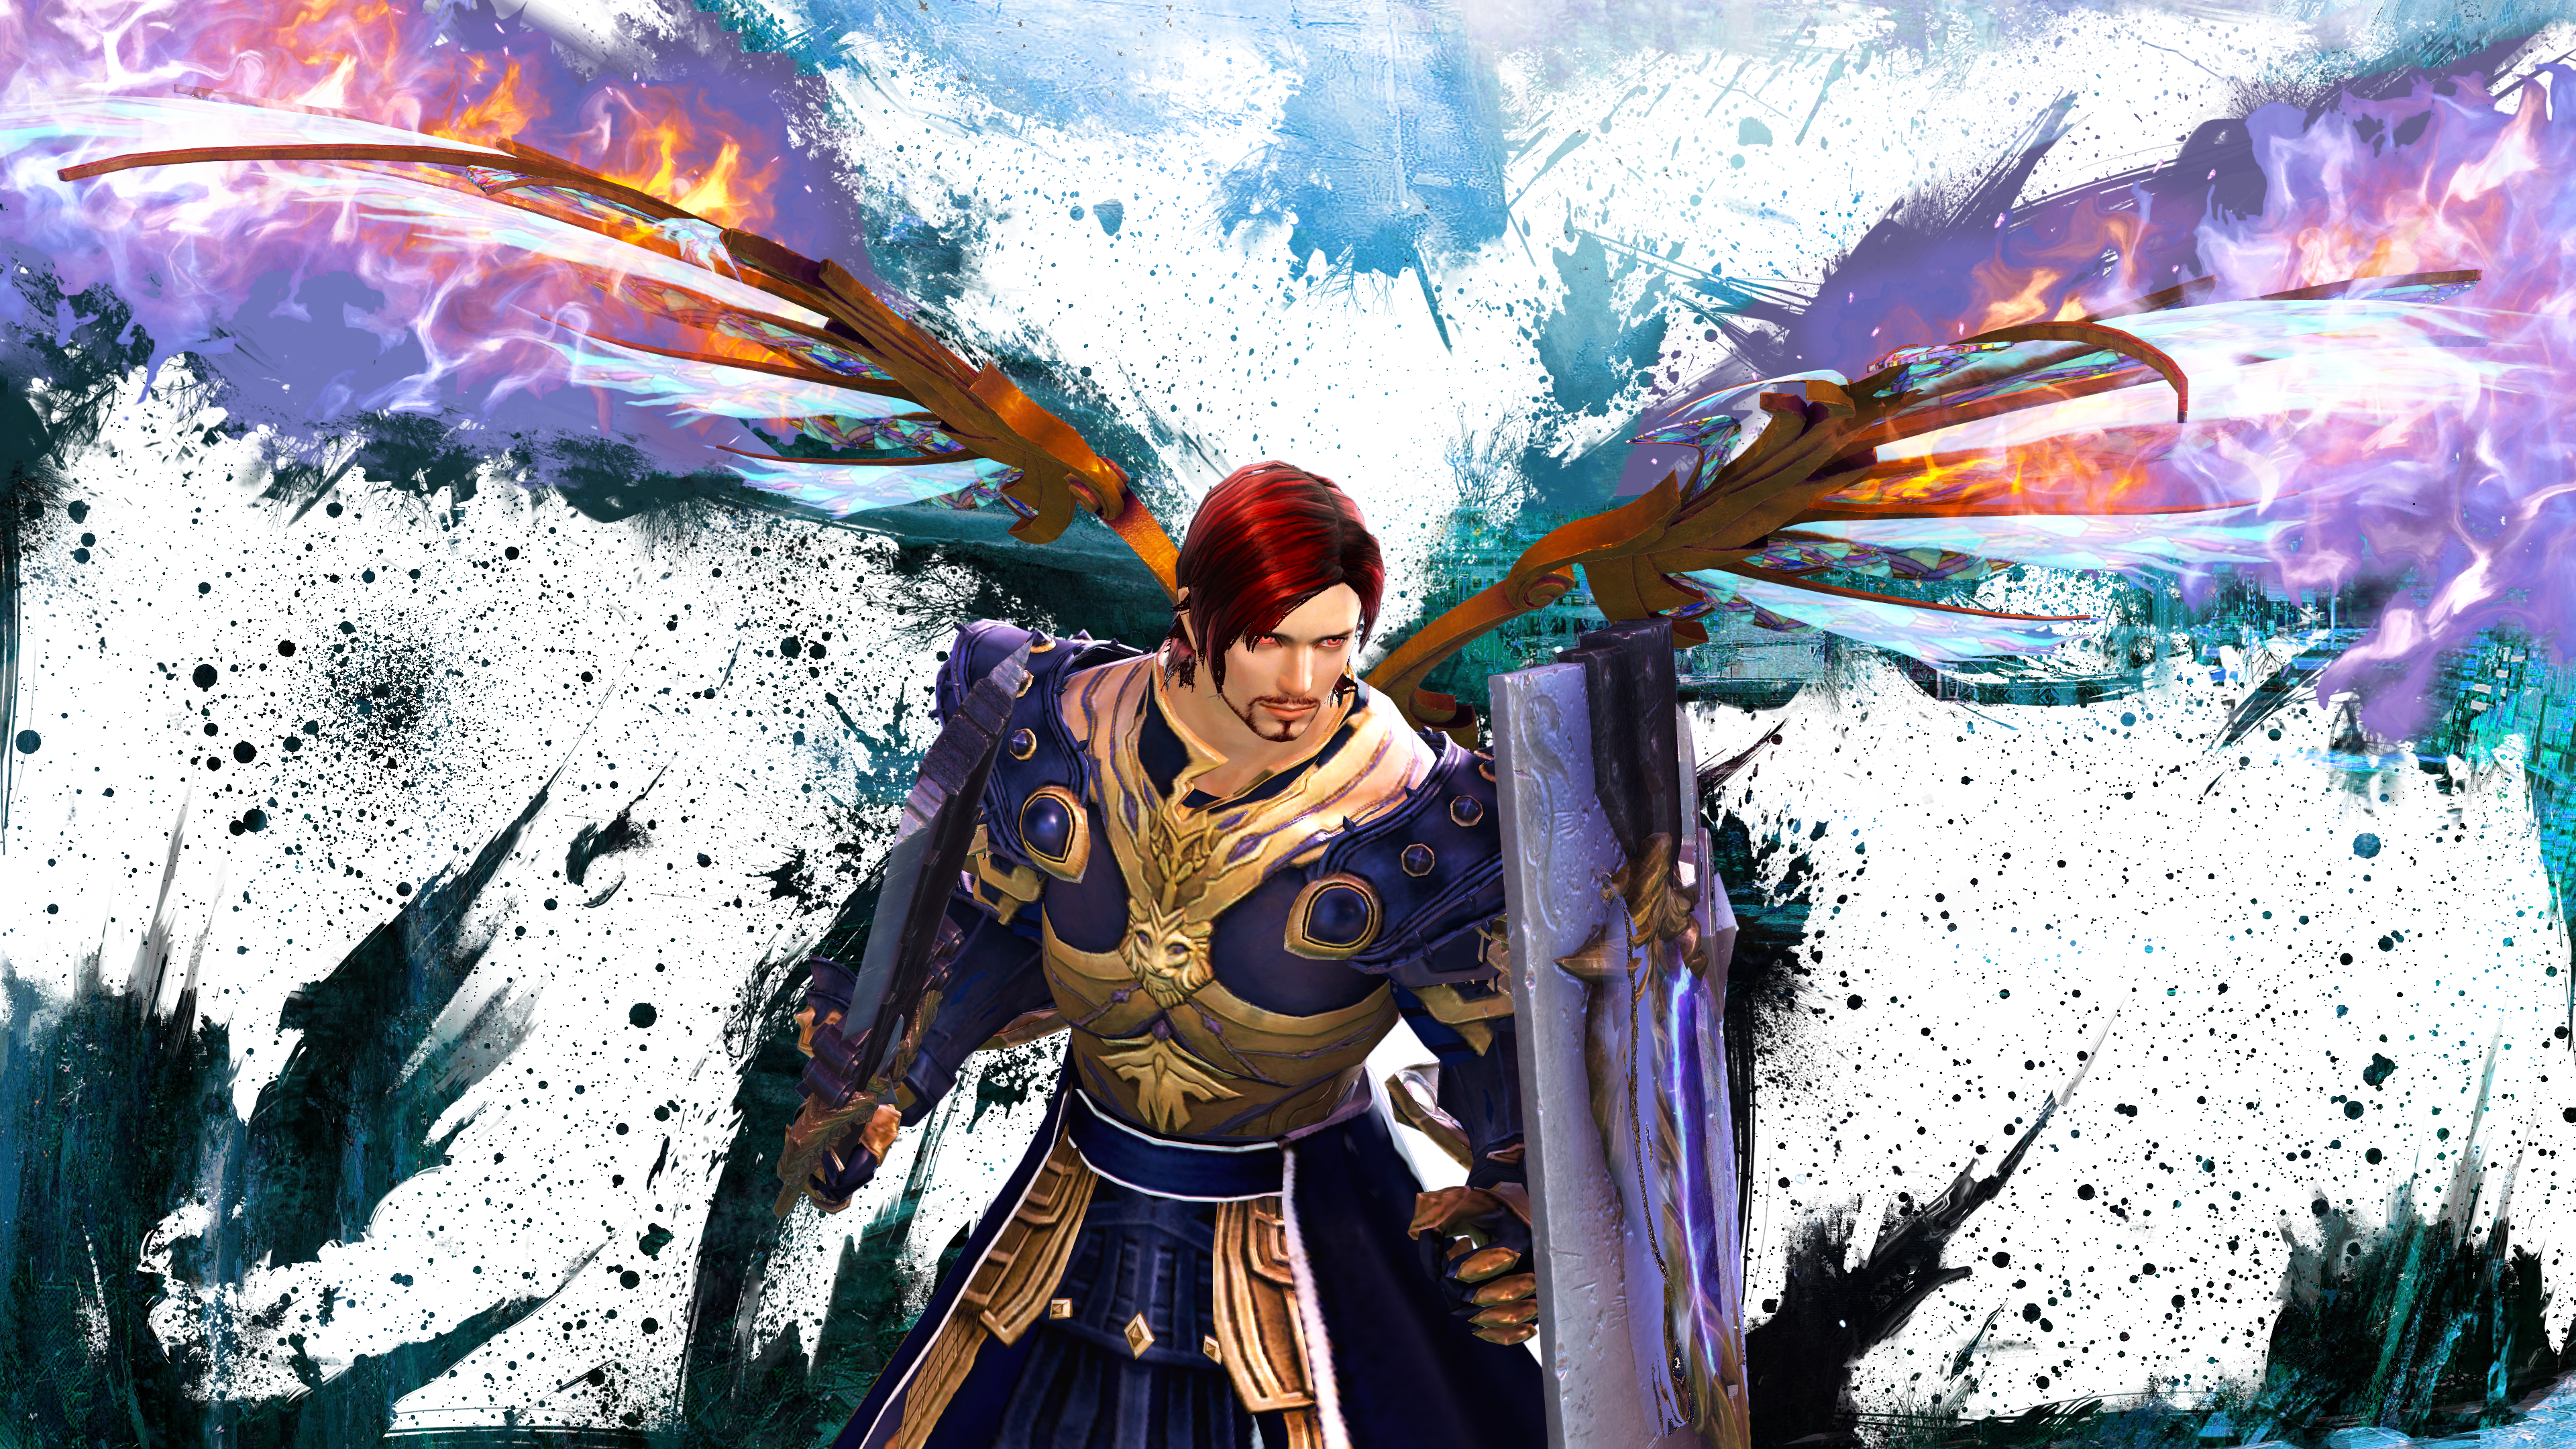 Guild Wars 2 4k Wallpaper By Windu190 On Deviantart